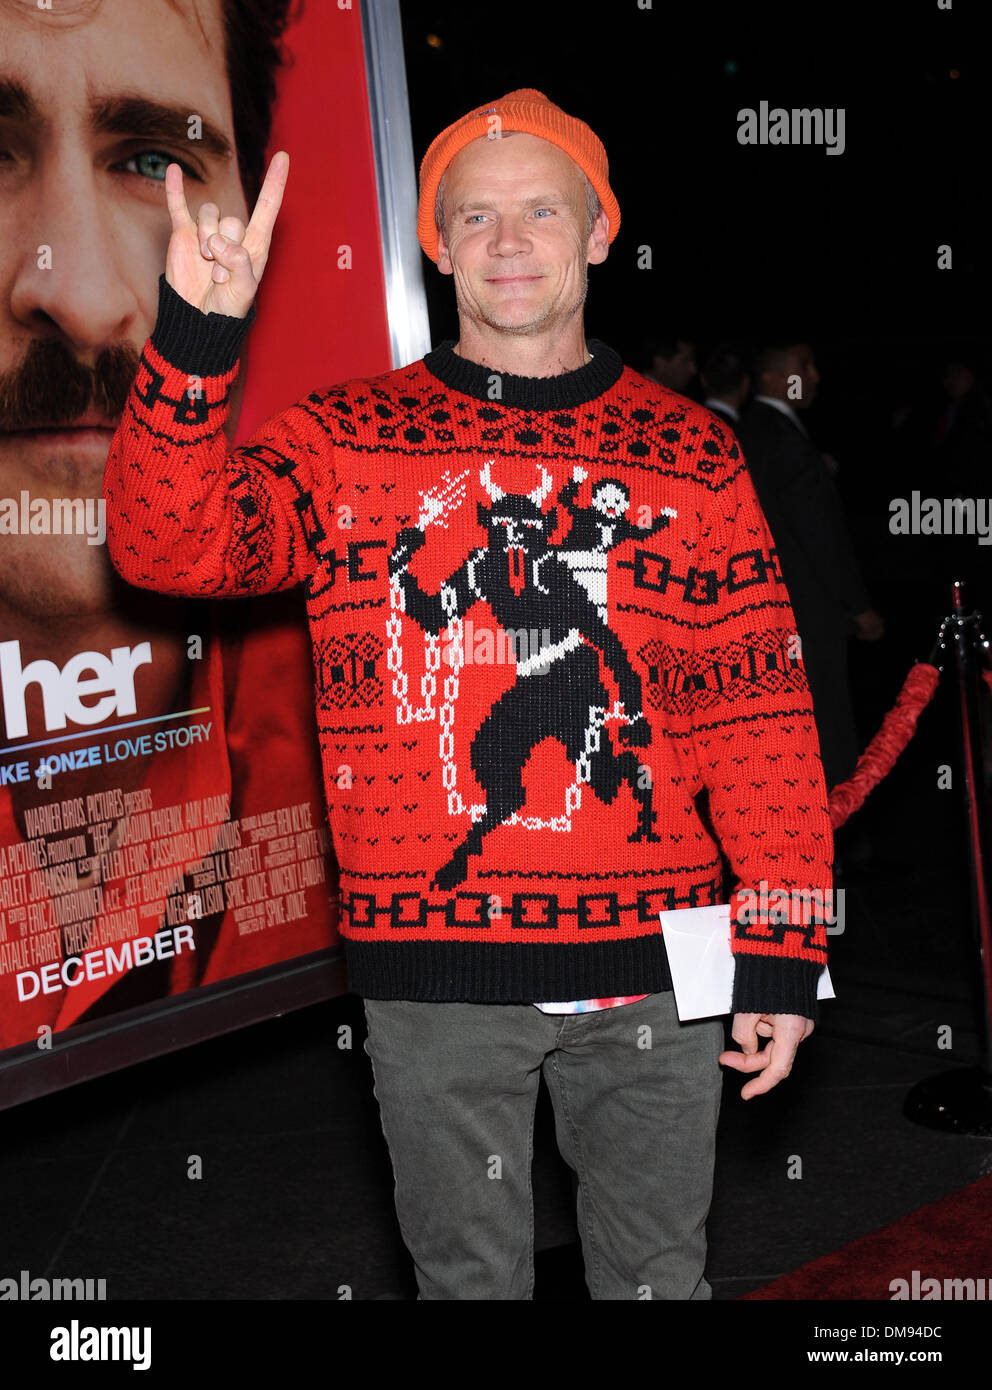 West Hollywood, California, USA. 12th Dec, 2013. Flea arrives for the premiere of the film 'Her' at the DGA theater. Stock Photo